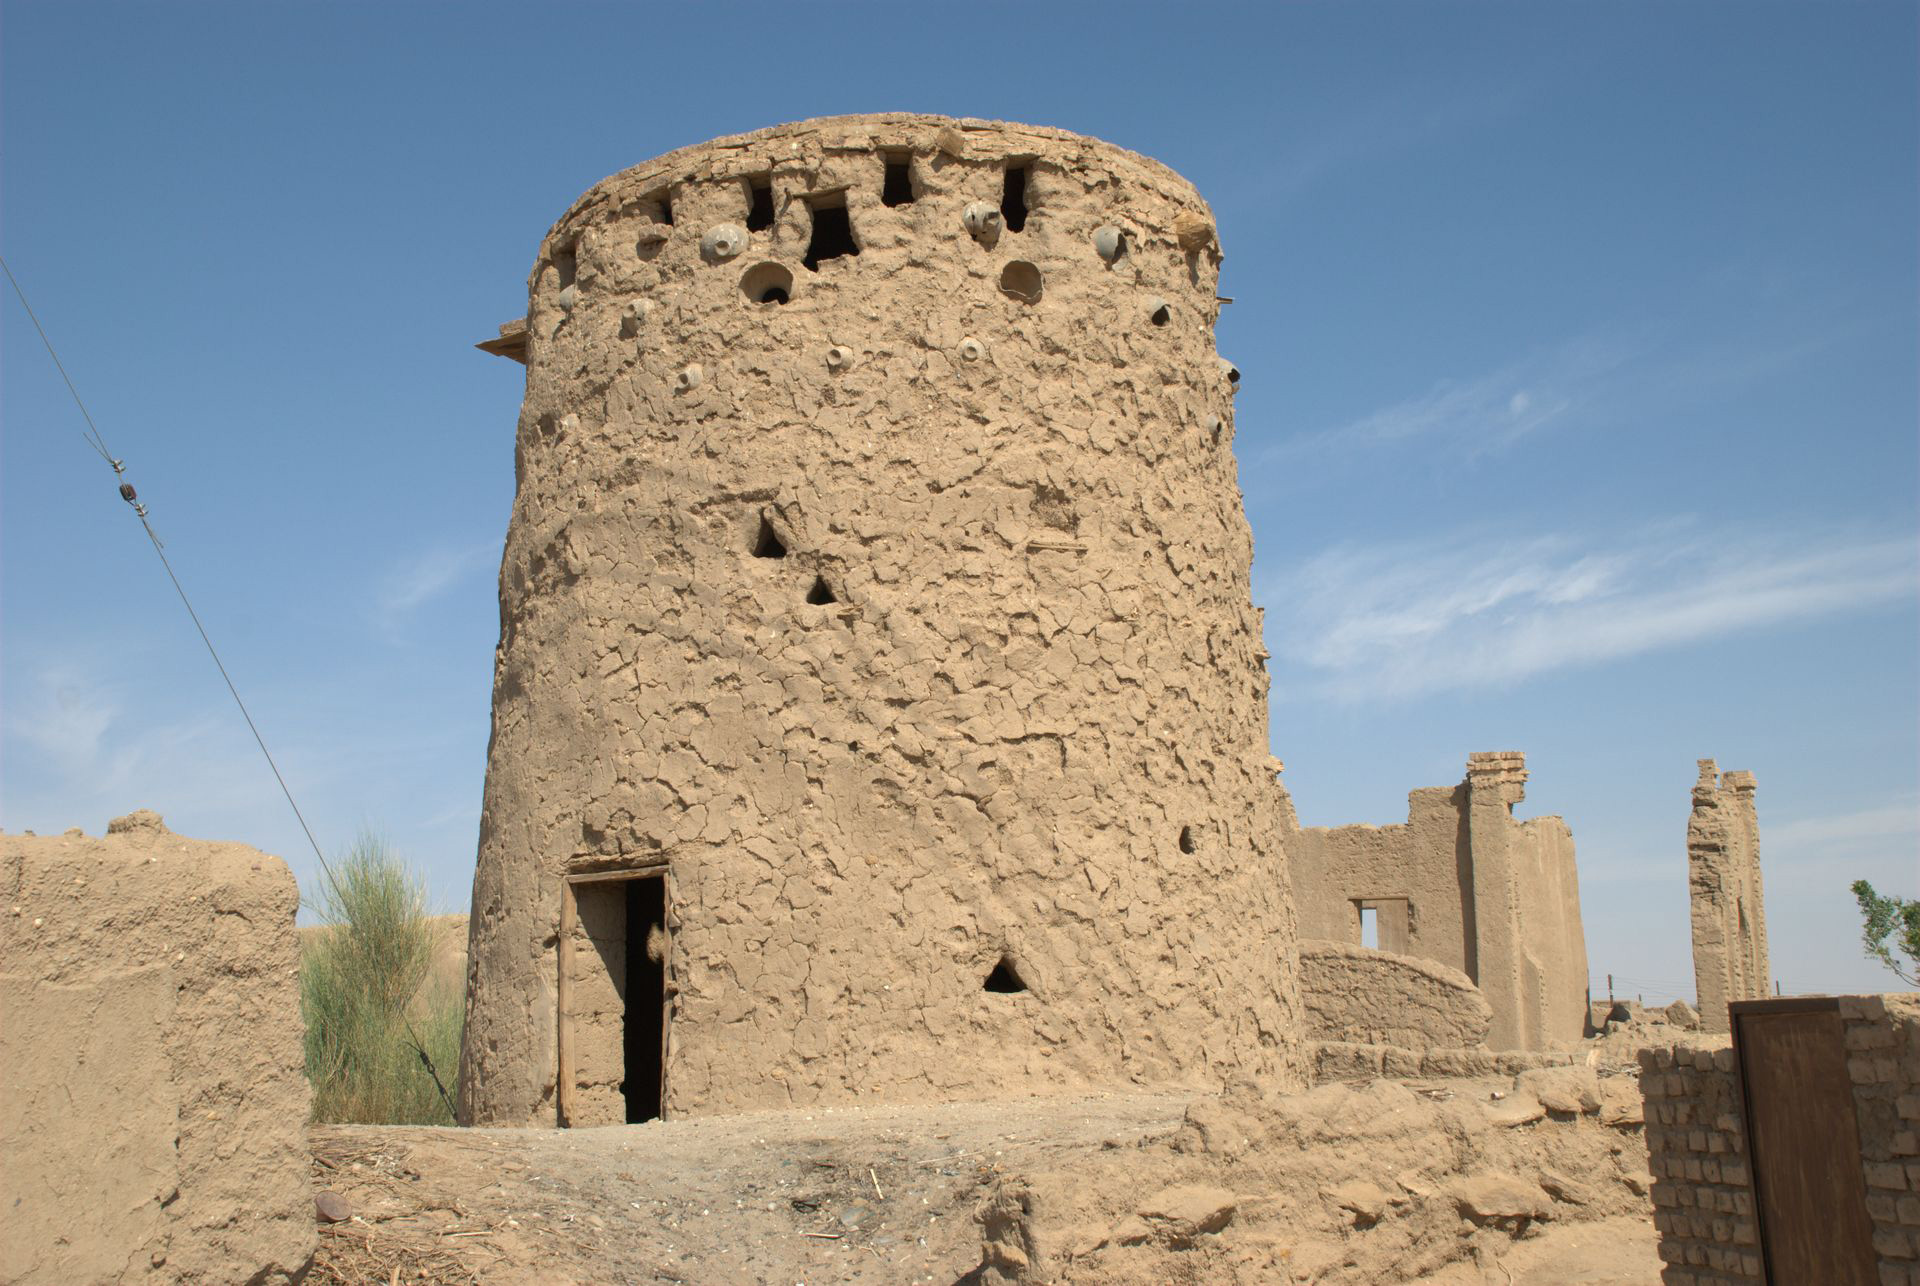 Pigeon towers - Fertiliser plants, Sudan | Shirish Beri | STIR